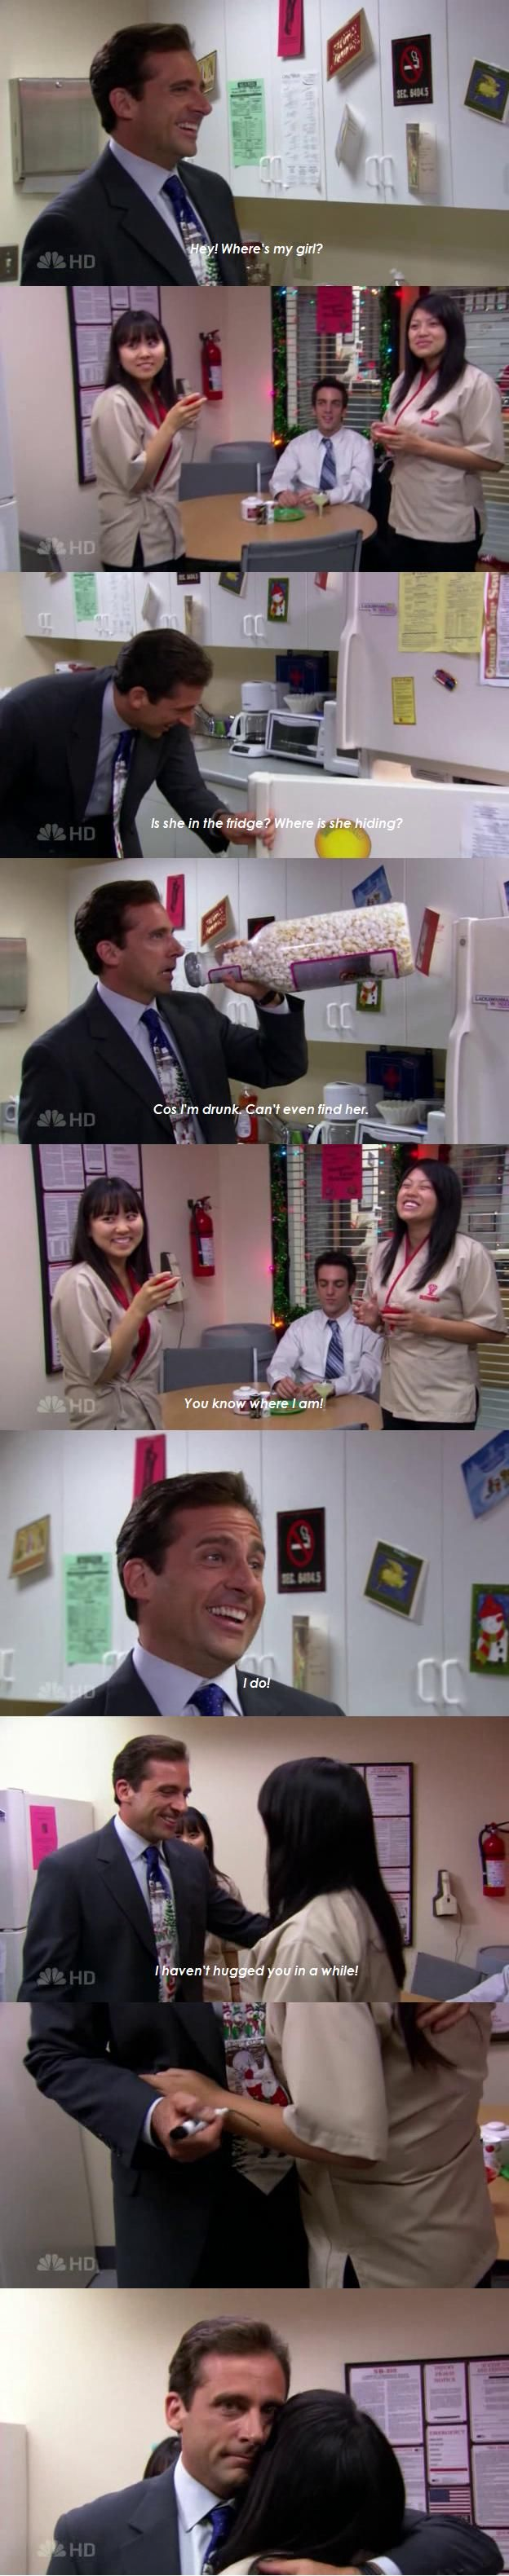 One of the funniest scenes from The Office